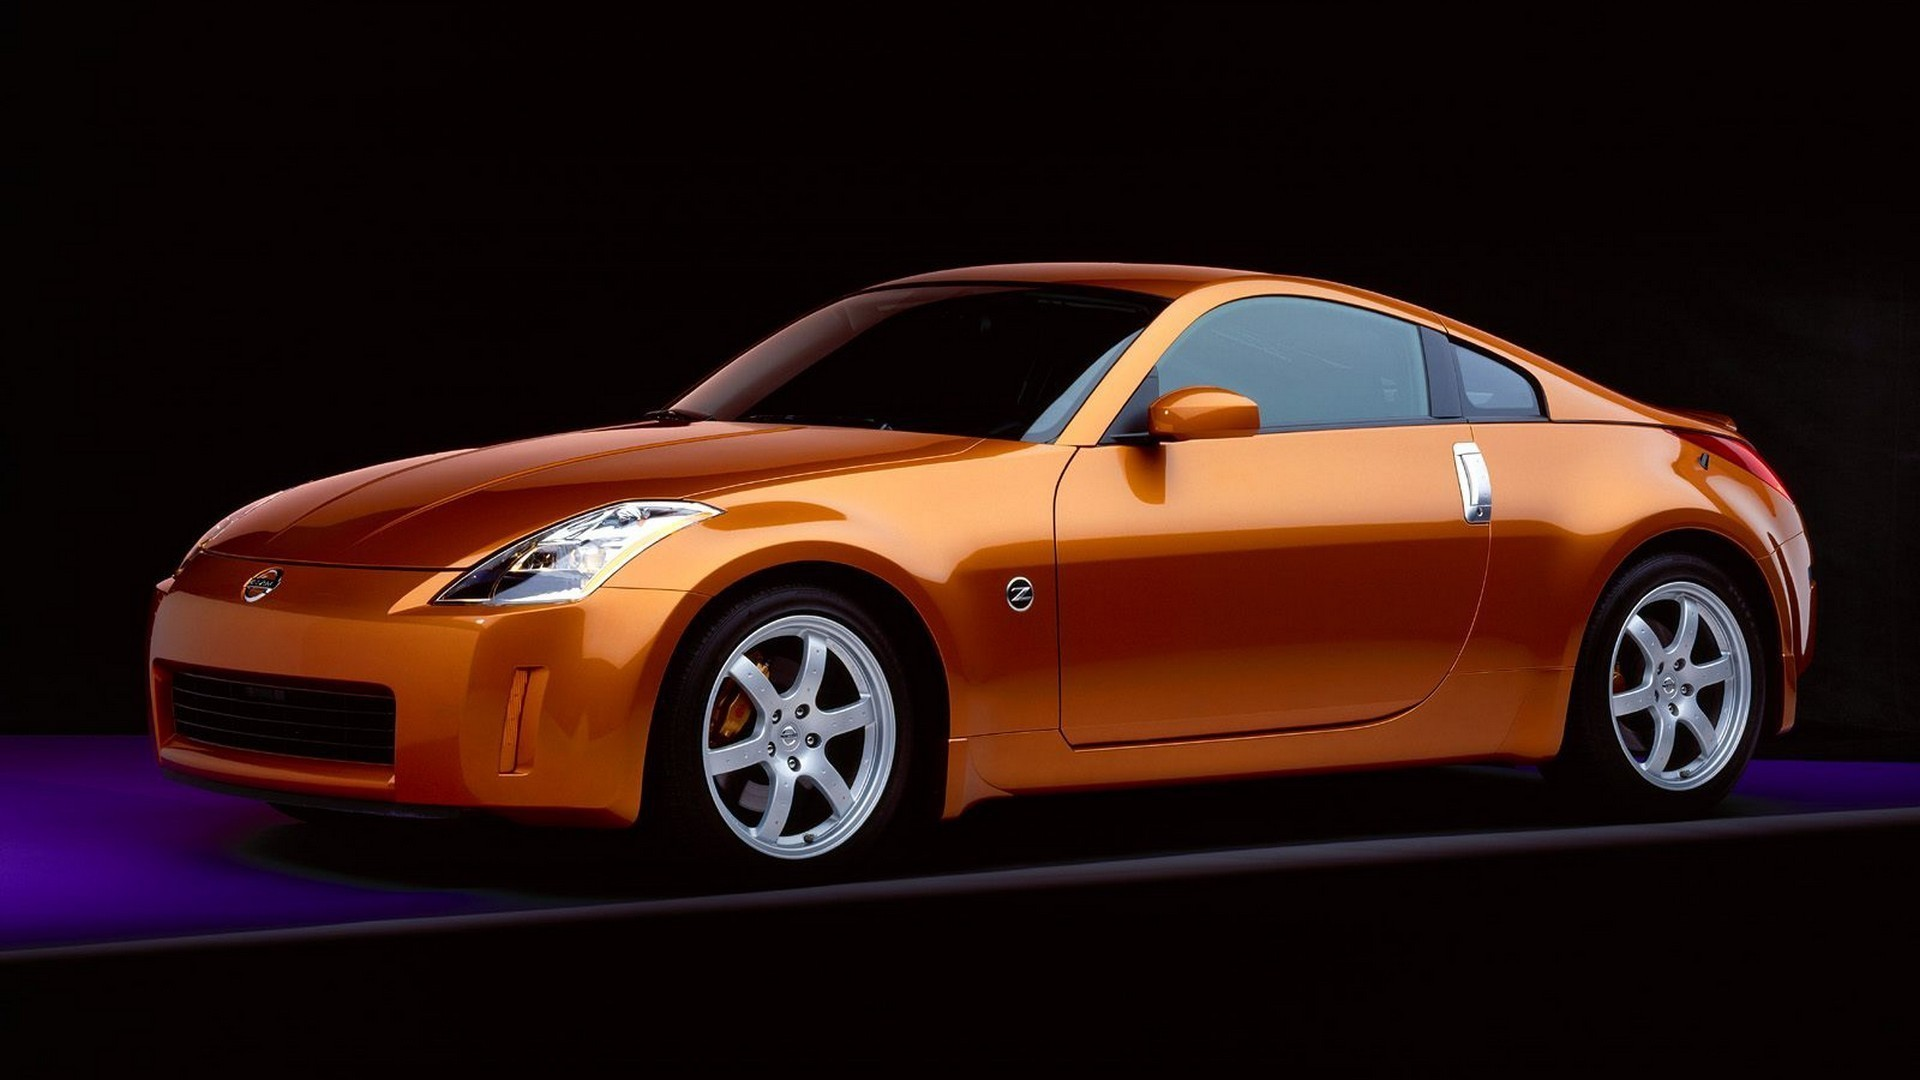 Orange Nissan 350Z on a black background